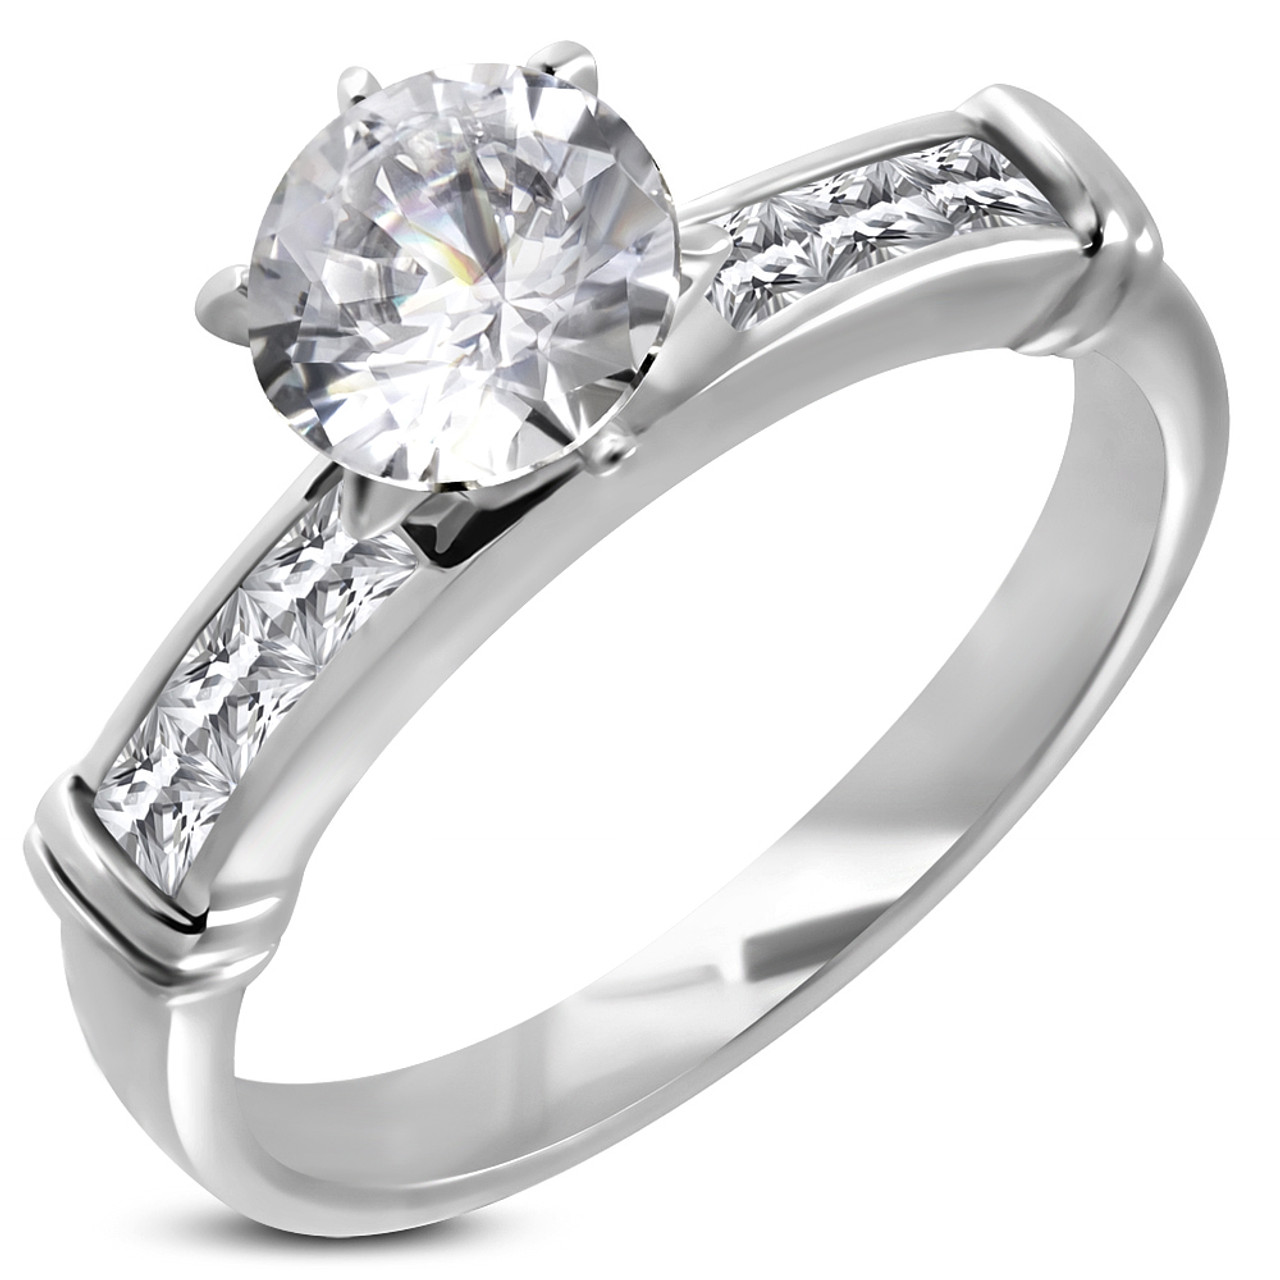 Stainless Steel Gold Color Prong-Set Engagement Ring with Clear CZ